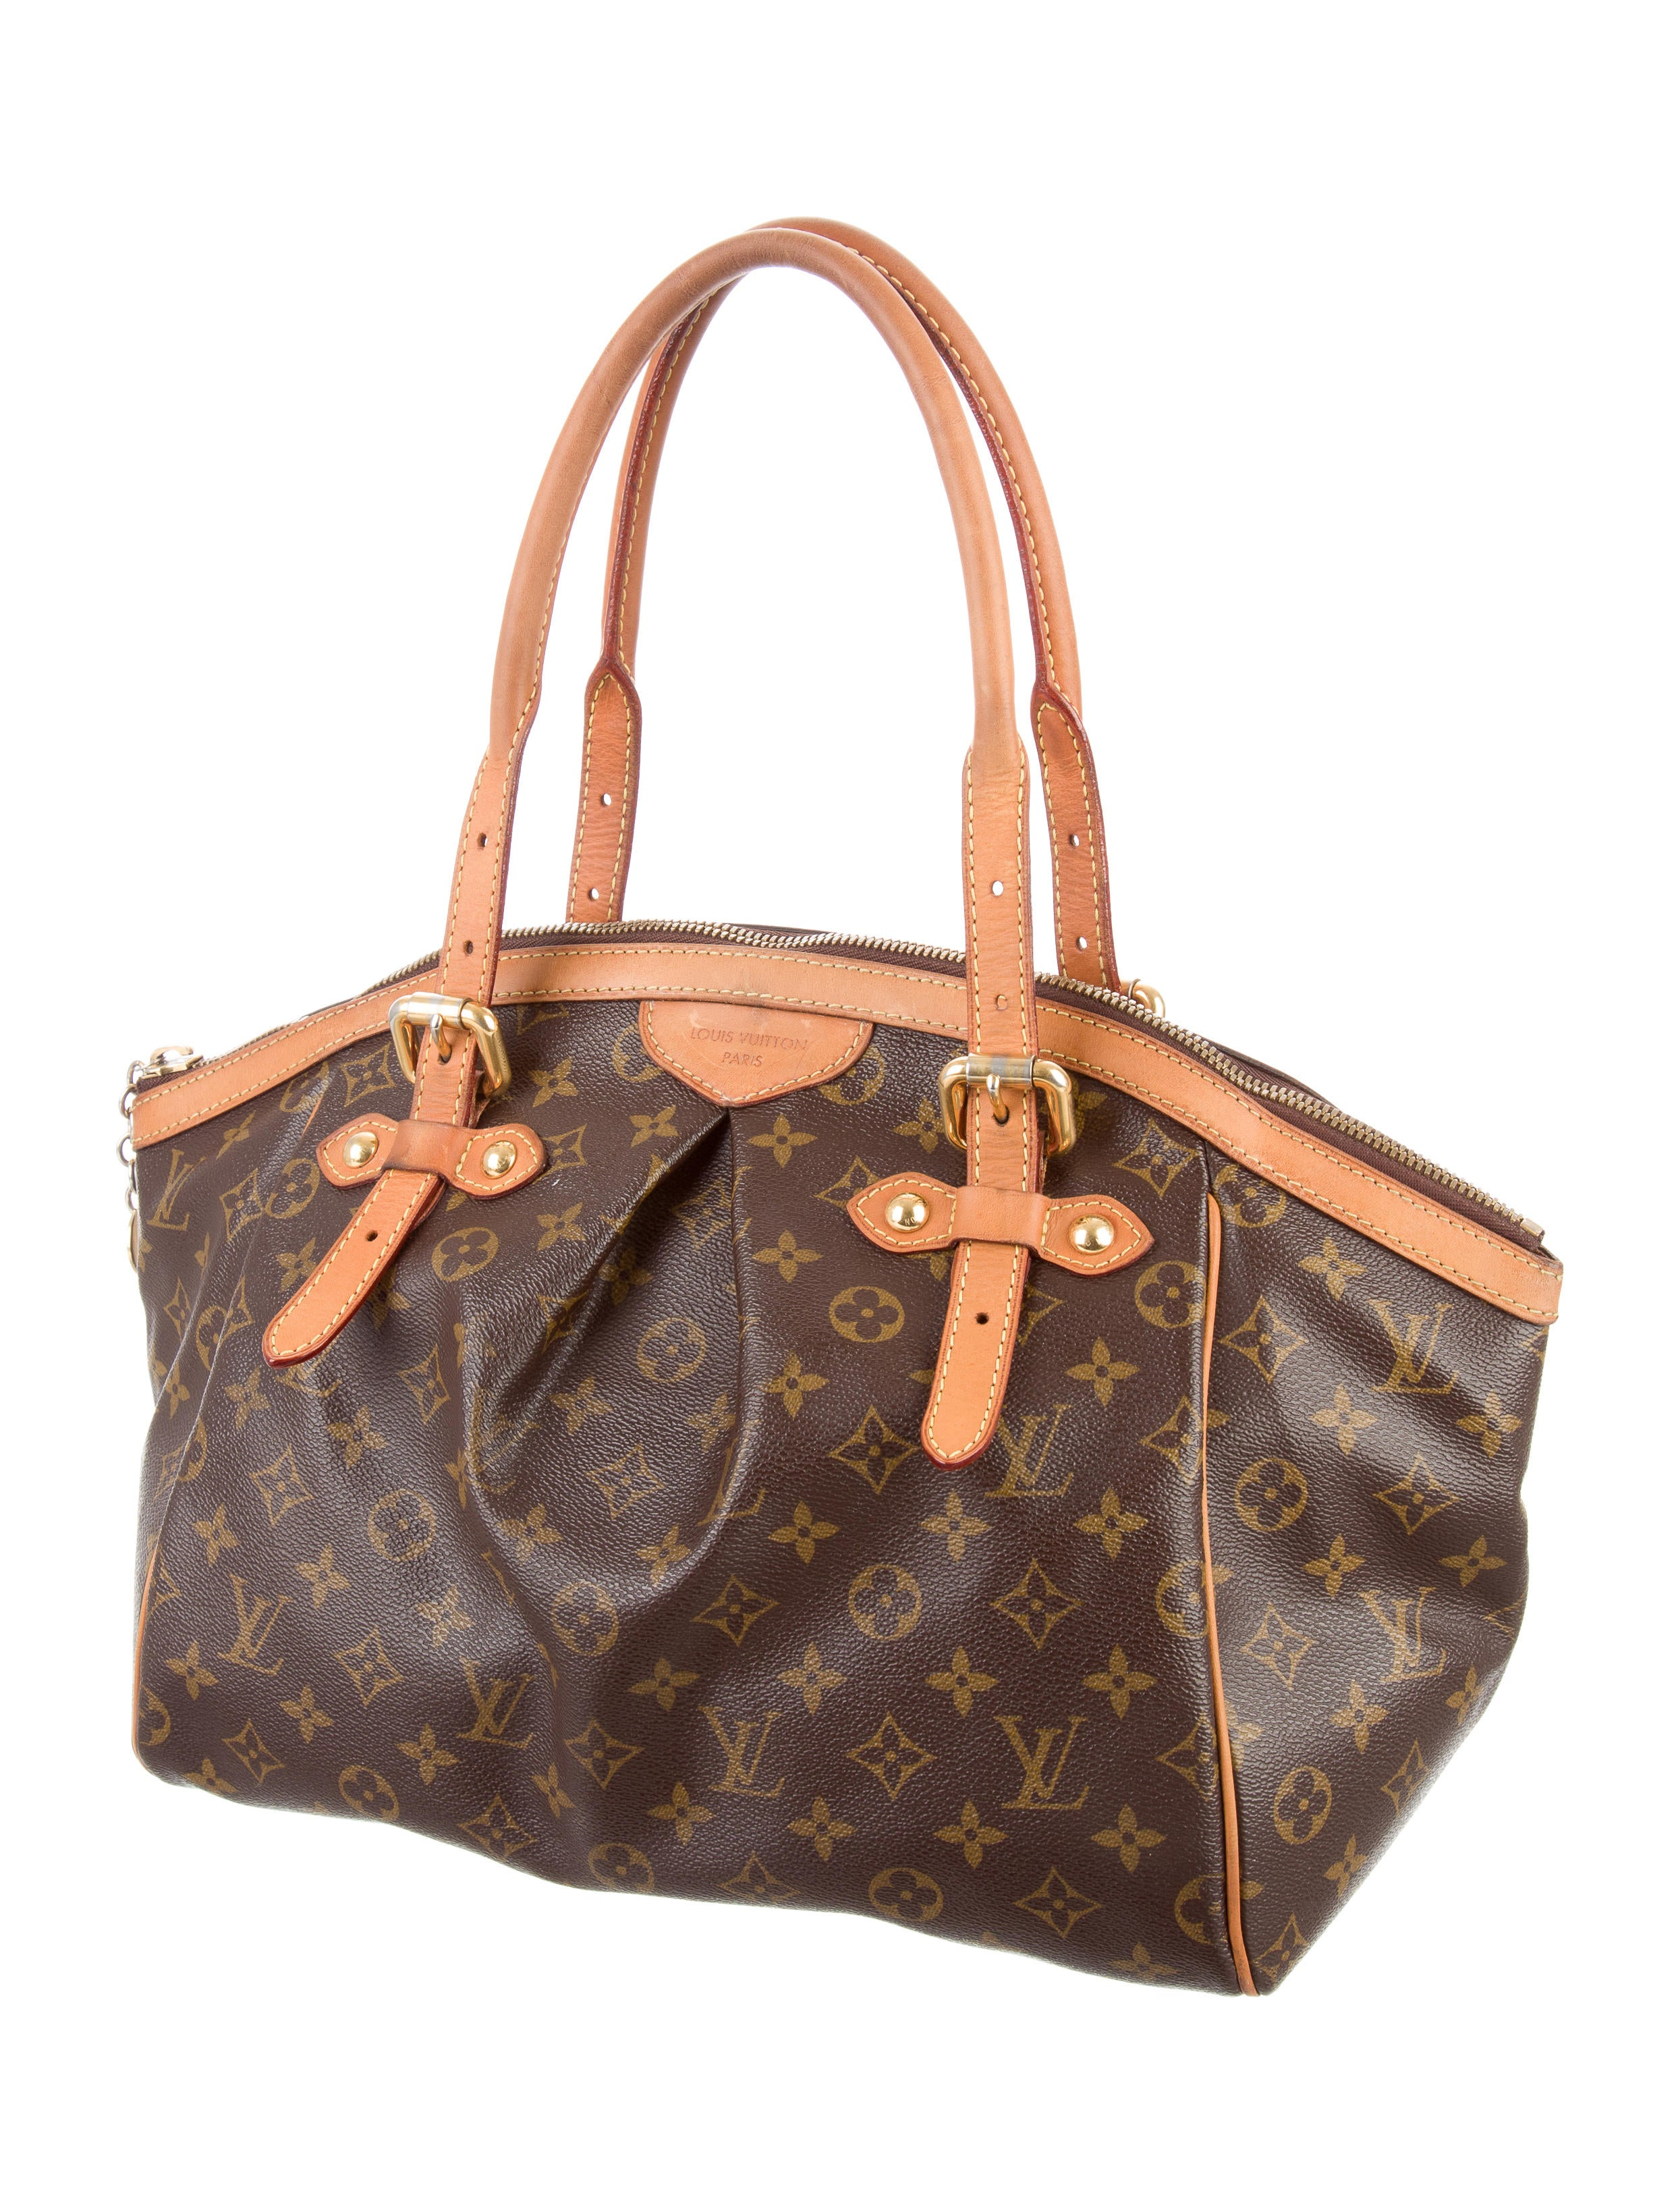 trivoli dating site Louis vuitton has been using production codes- or date codes as they are commonly referred to in almost every item that they have produced since the early 1980s.